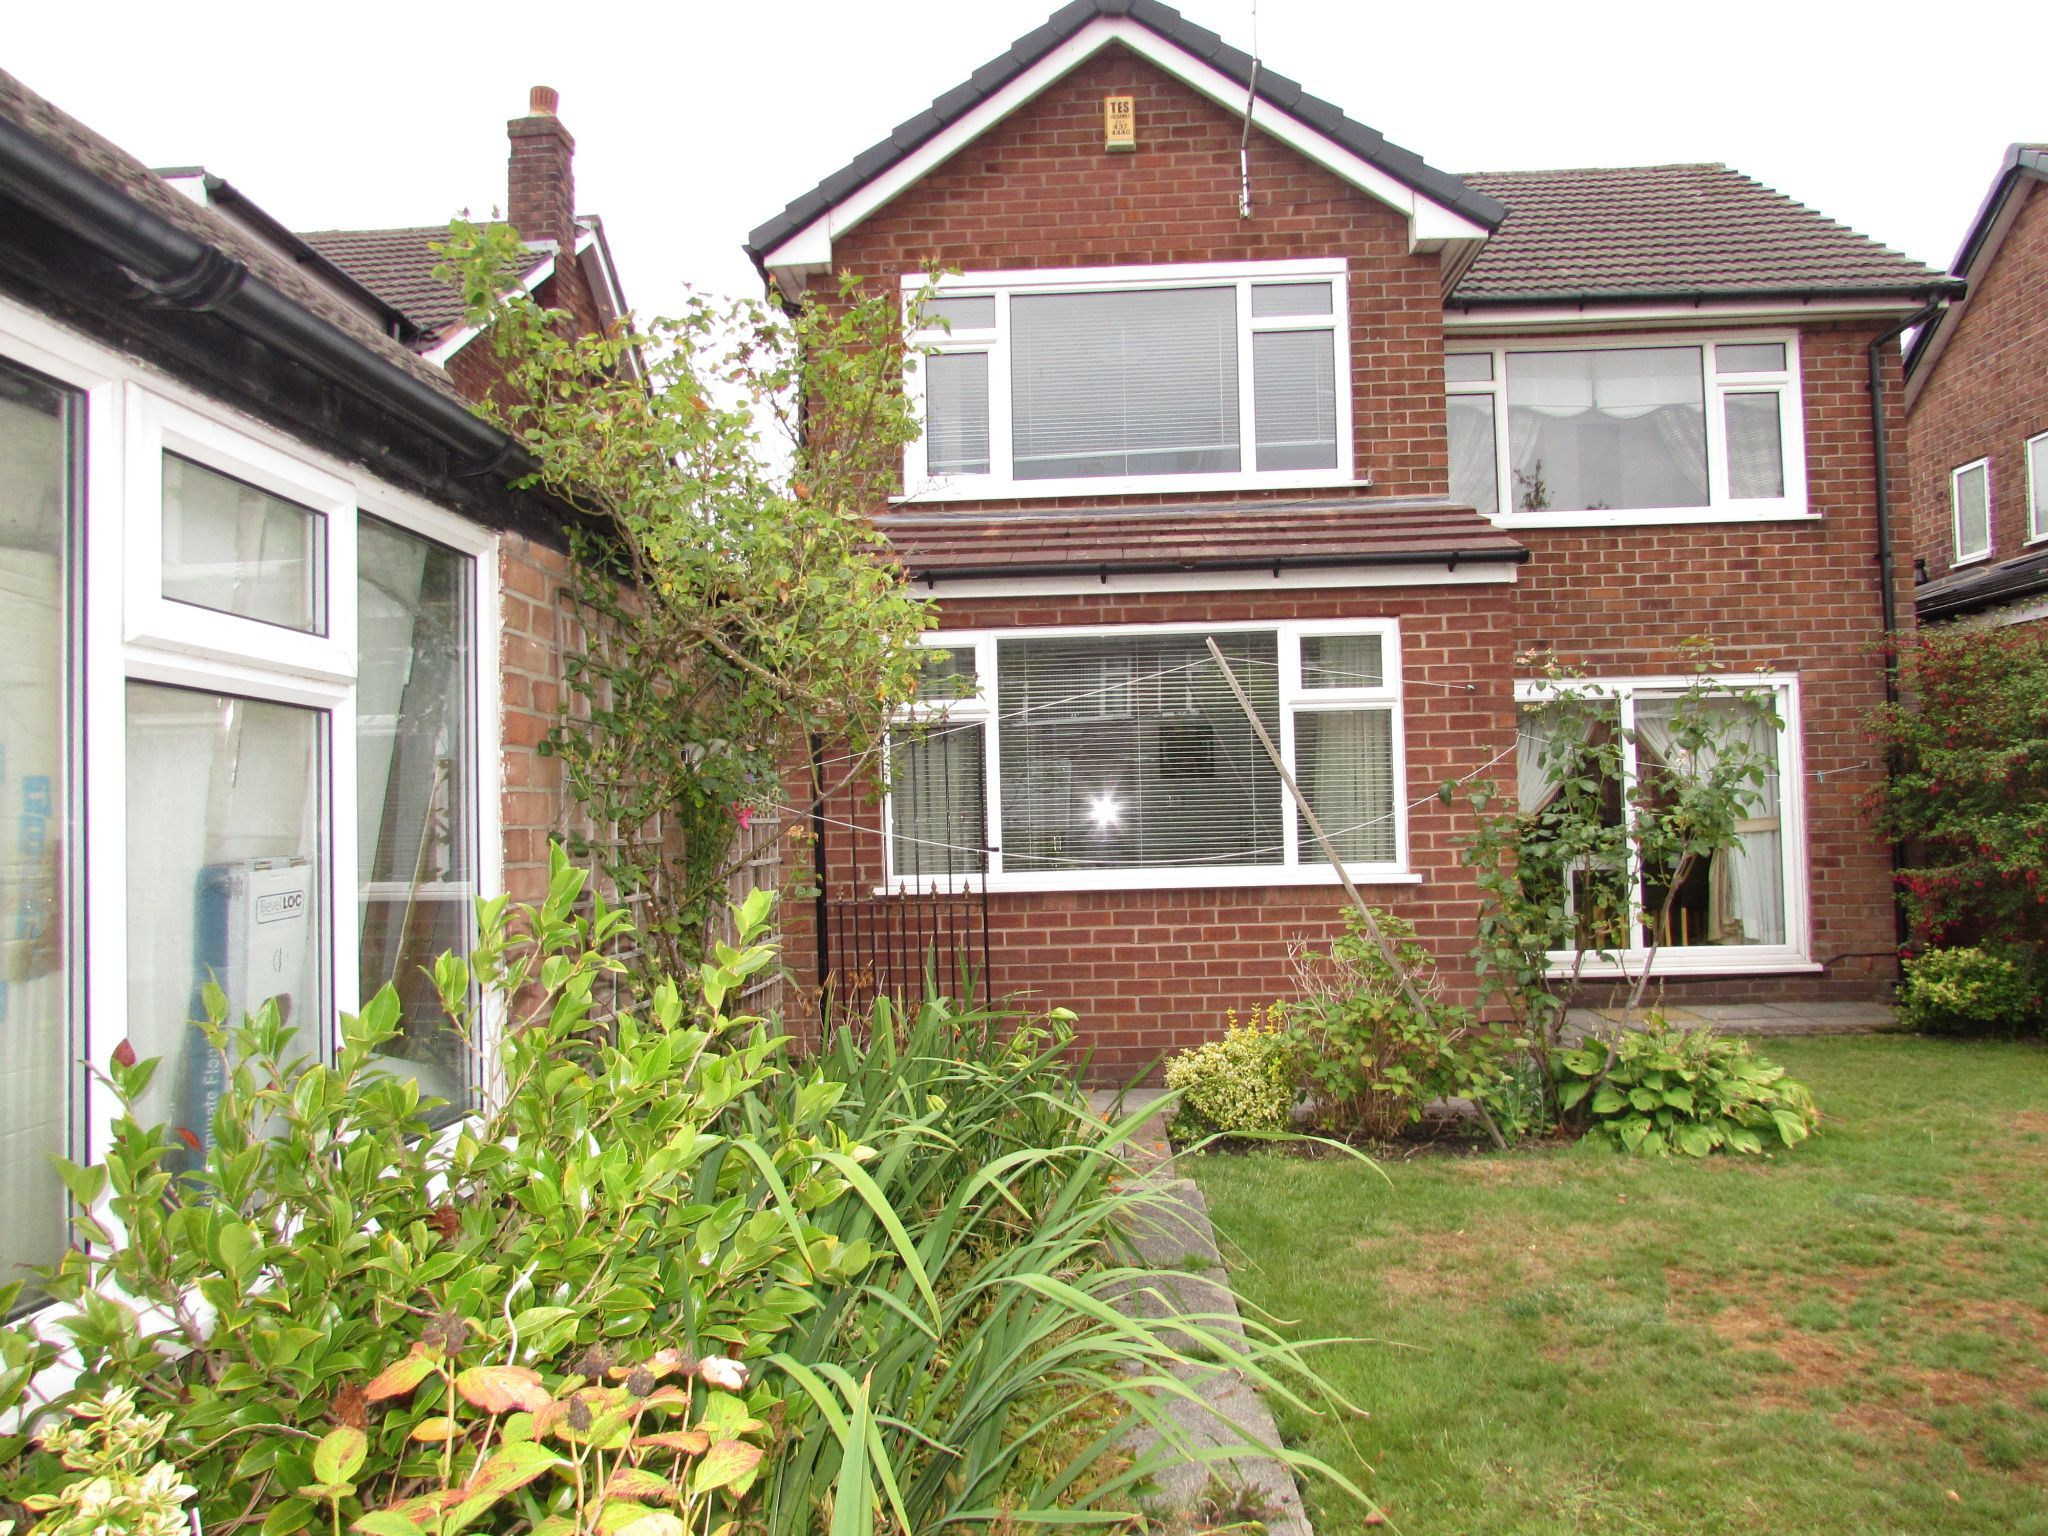 3 Bedroom Detached House For Sale - Photograph 17